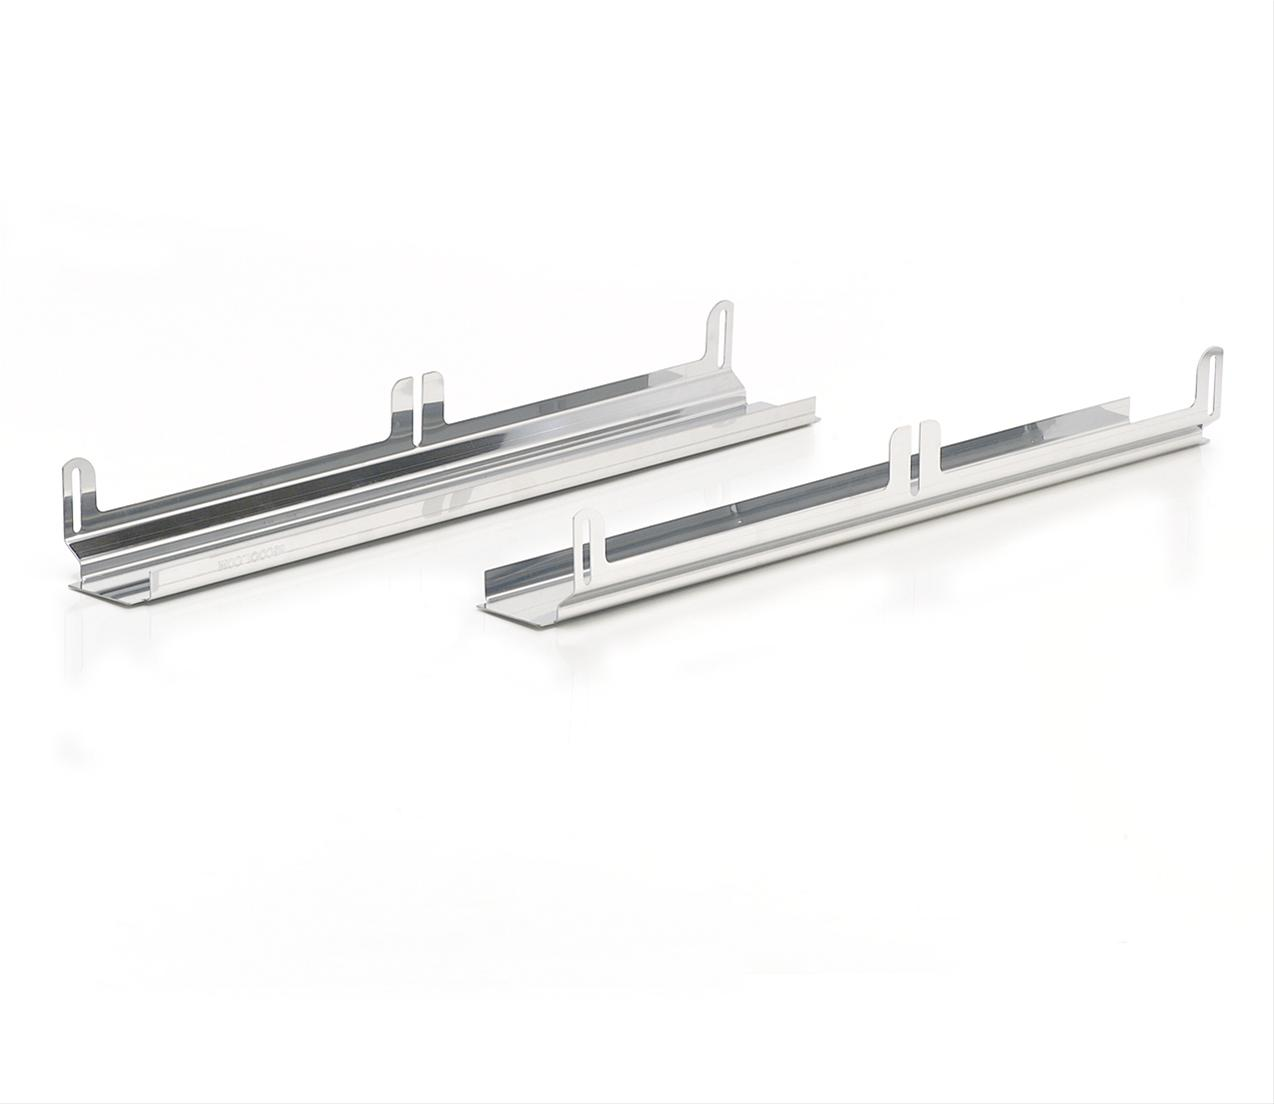 Be Cool Fan Mounting Brackets Stainless Steel Polished For